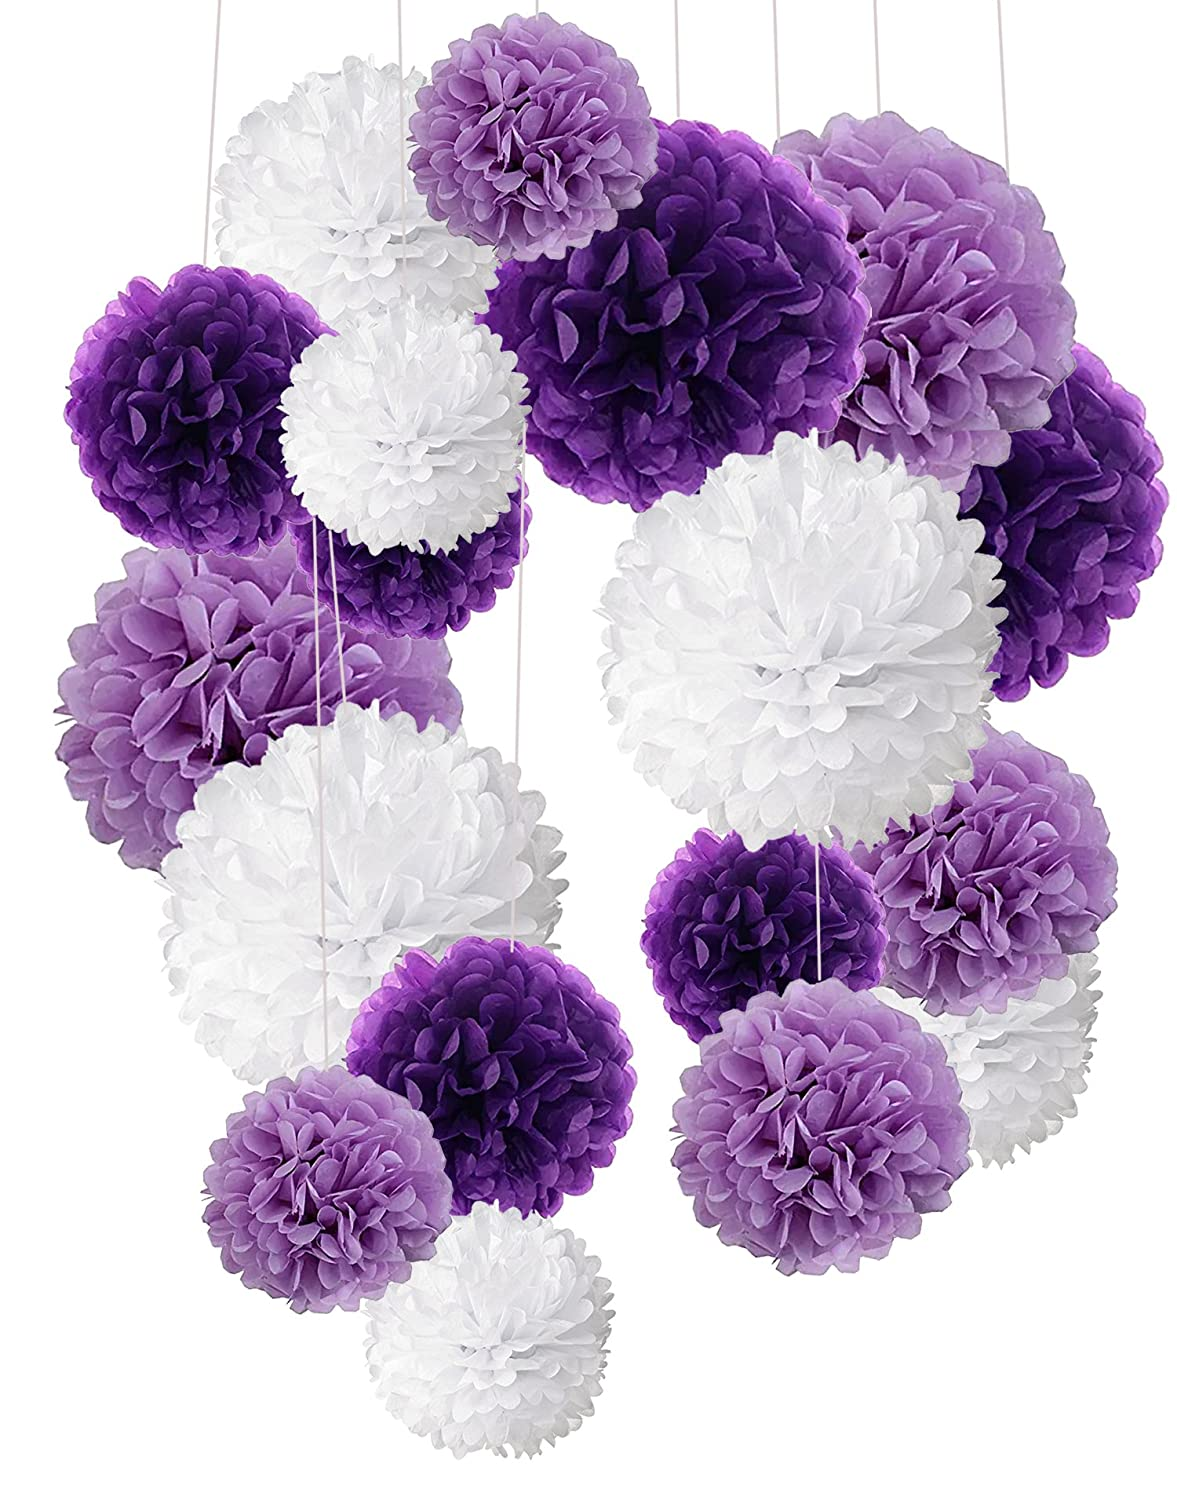 Tissue Paper Pom Poms Recosis Paper Flower Ball For Birthday Party